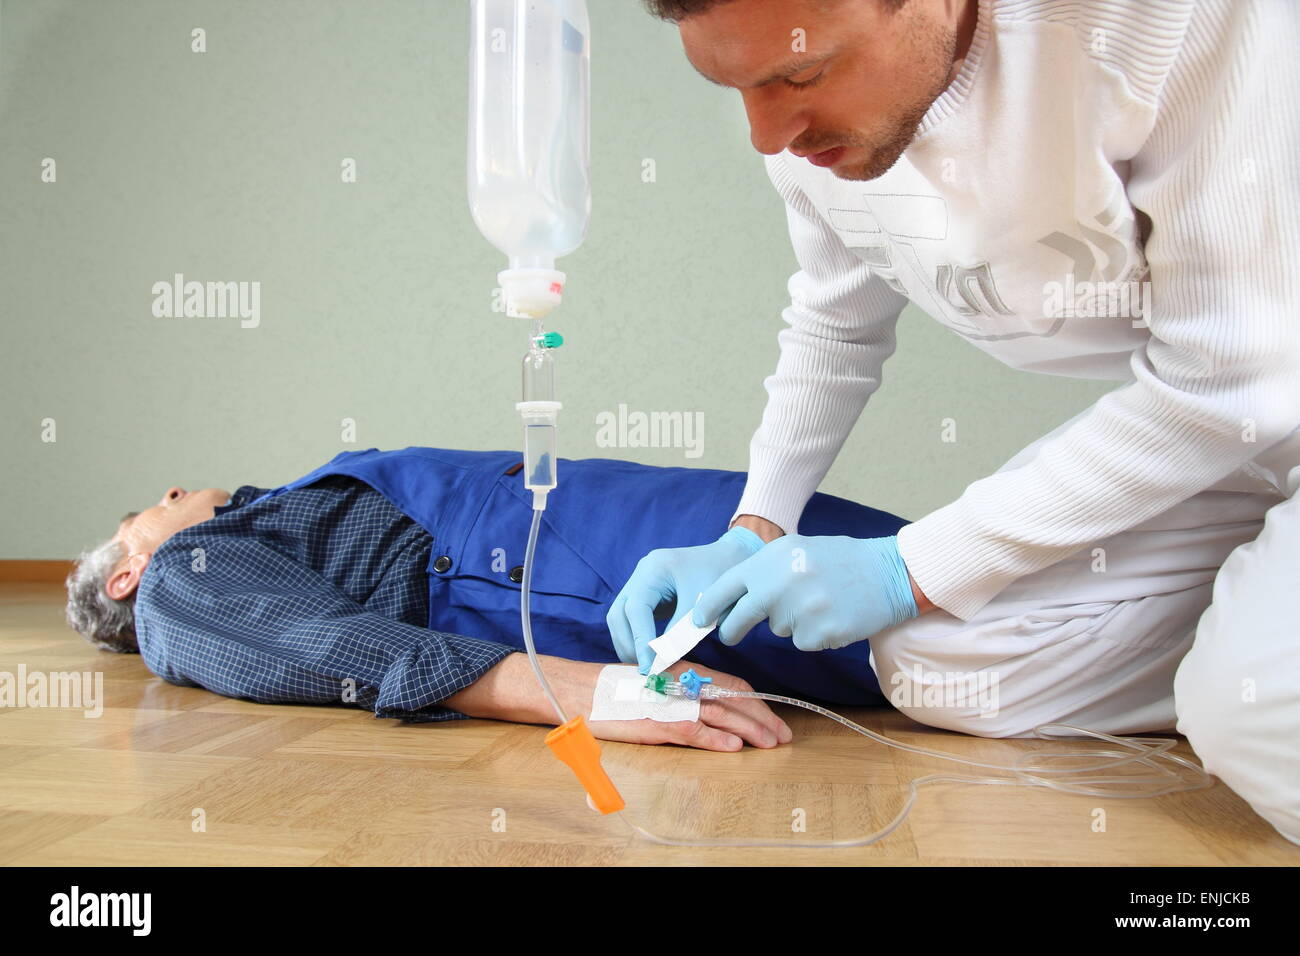 A Infusion of a patient by a paramedic - Stock Image